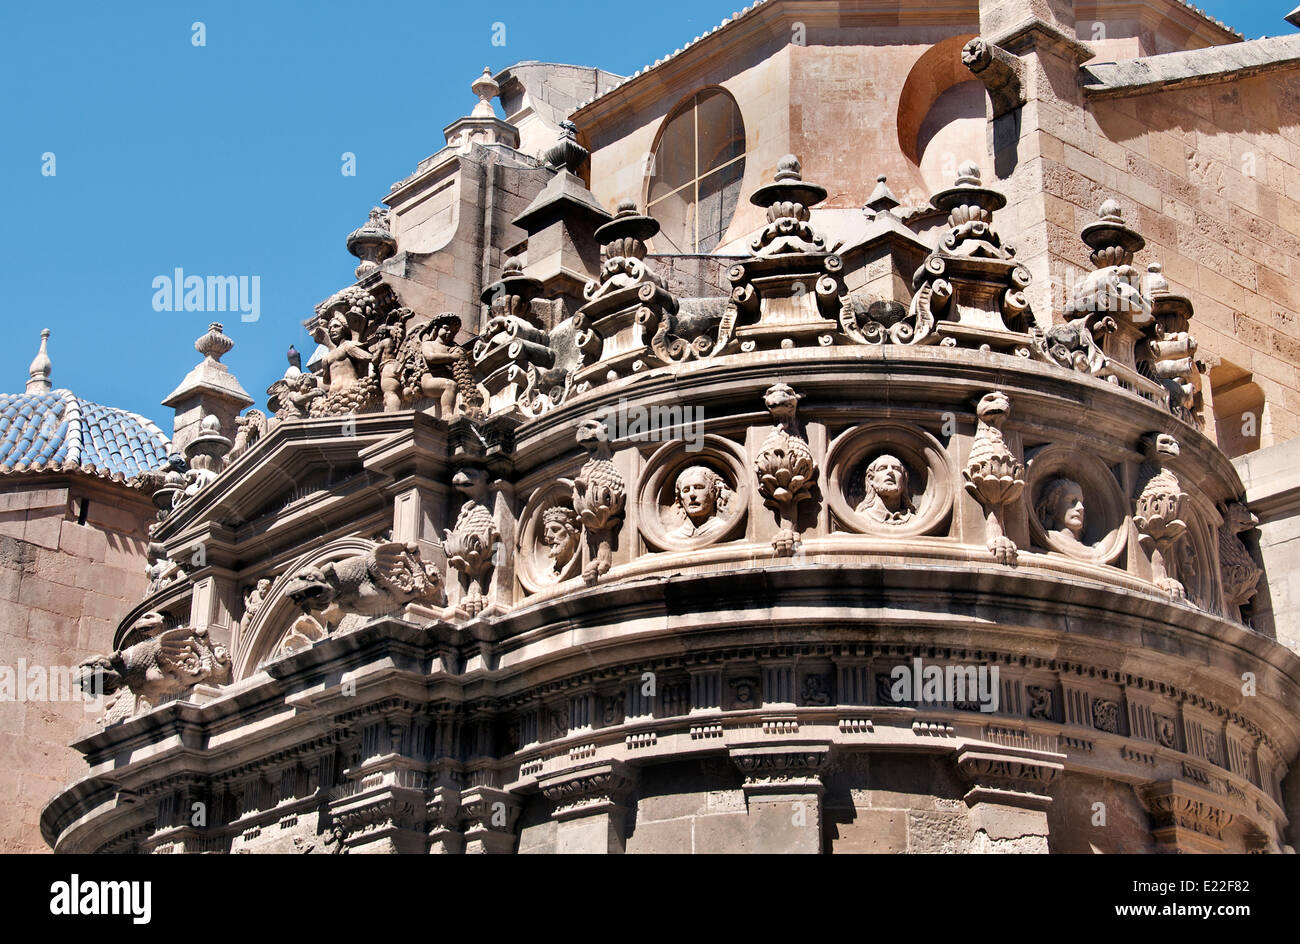 Murcia Cathedral - Plaza del Cardenal Belluga Spain Spanish Andalusia Stock Photo